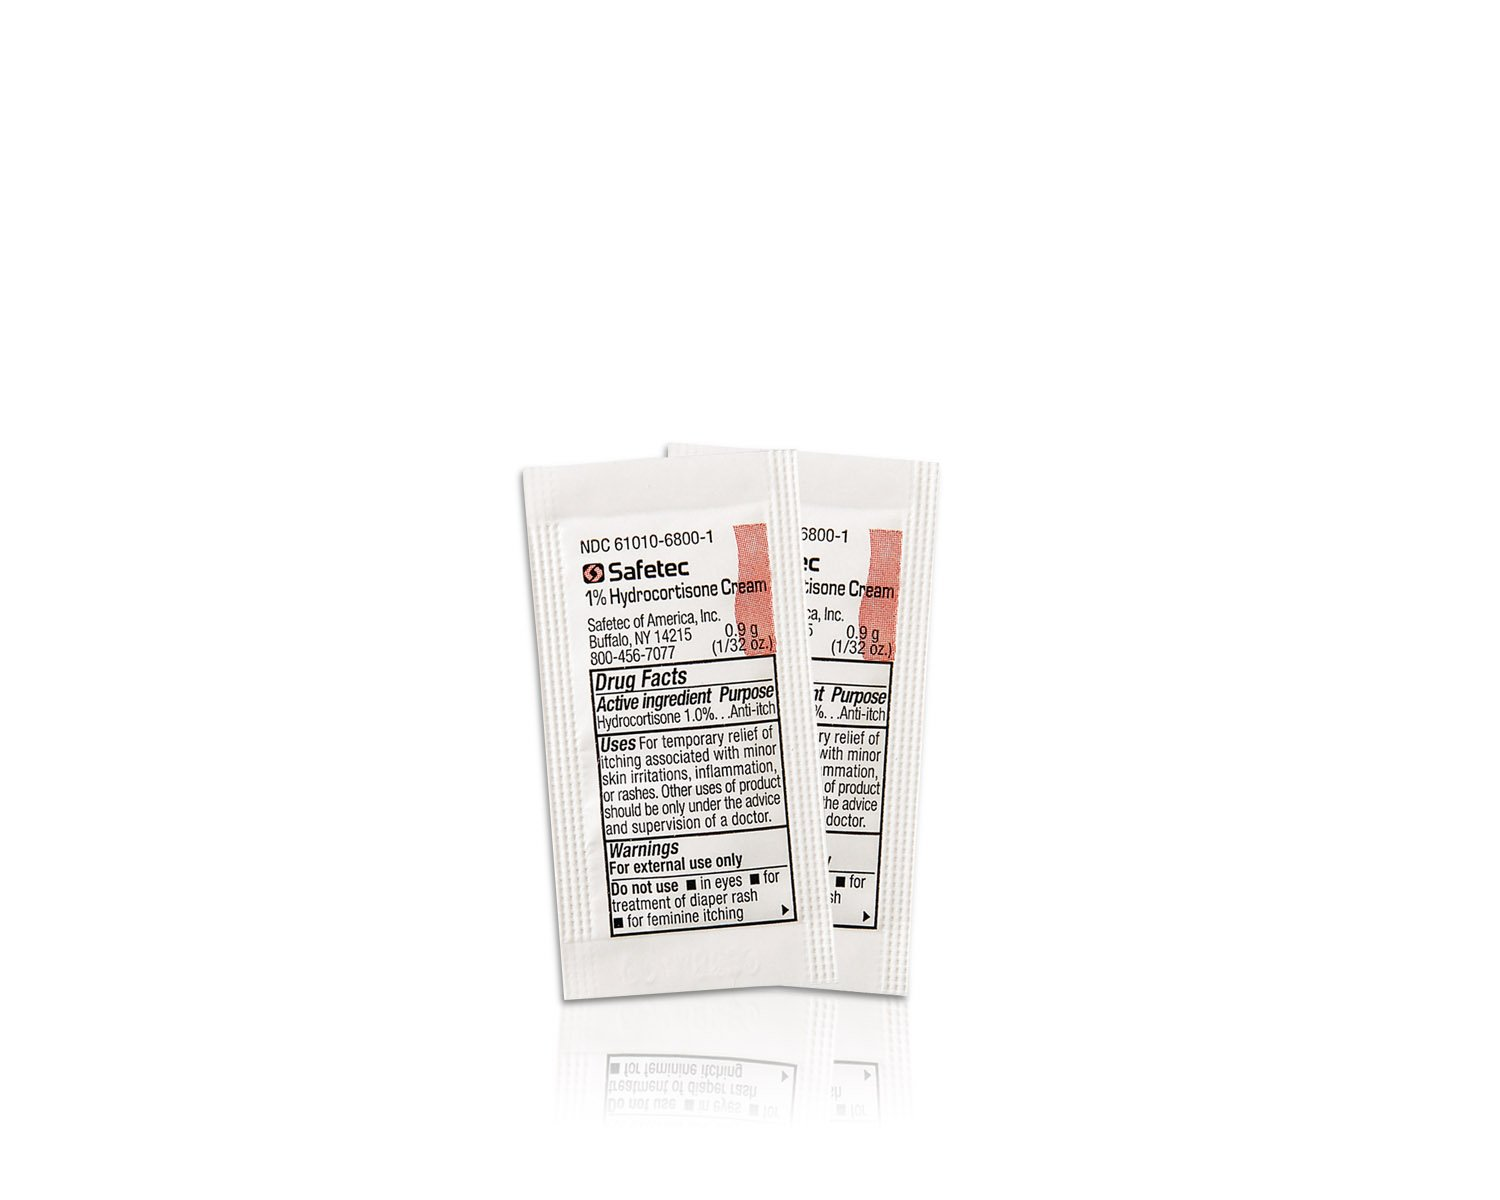 Safetec Hydrocortisone 1% Cream, .9 g. pouch (bulk package - 2000 count) by Safetec